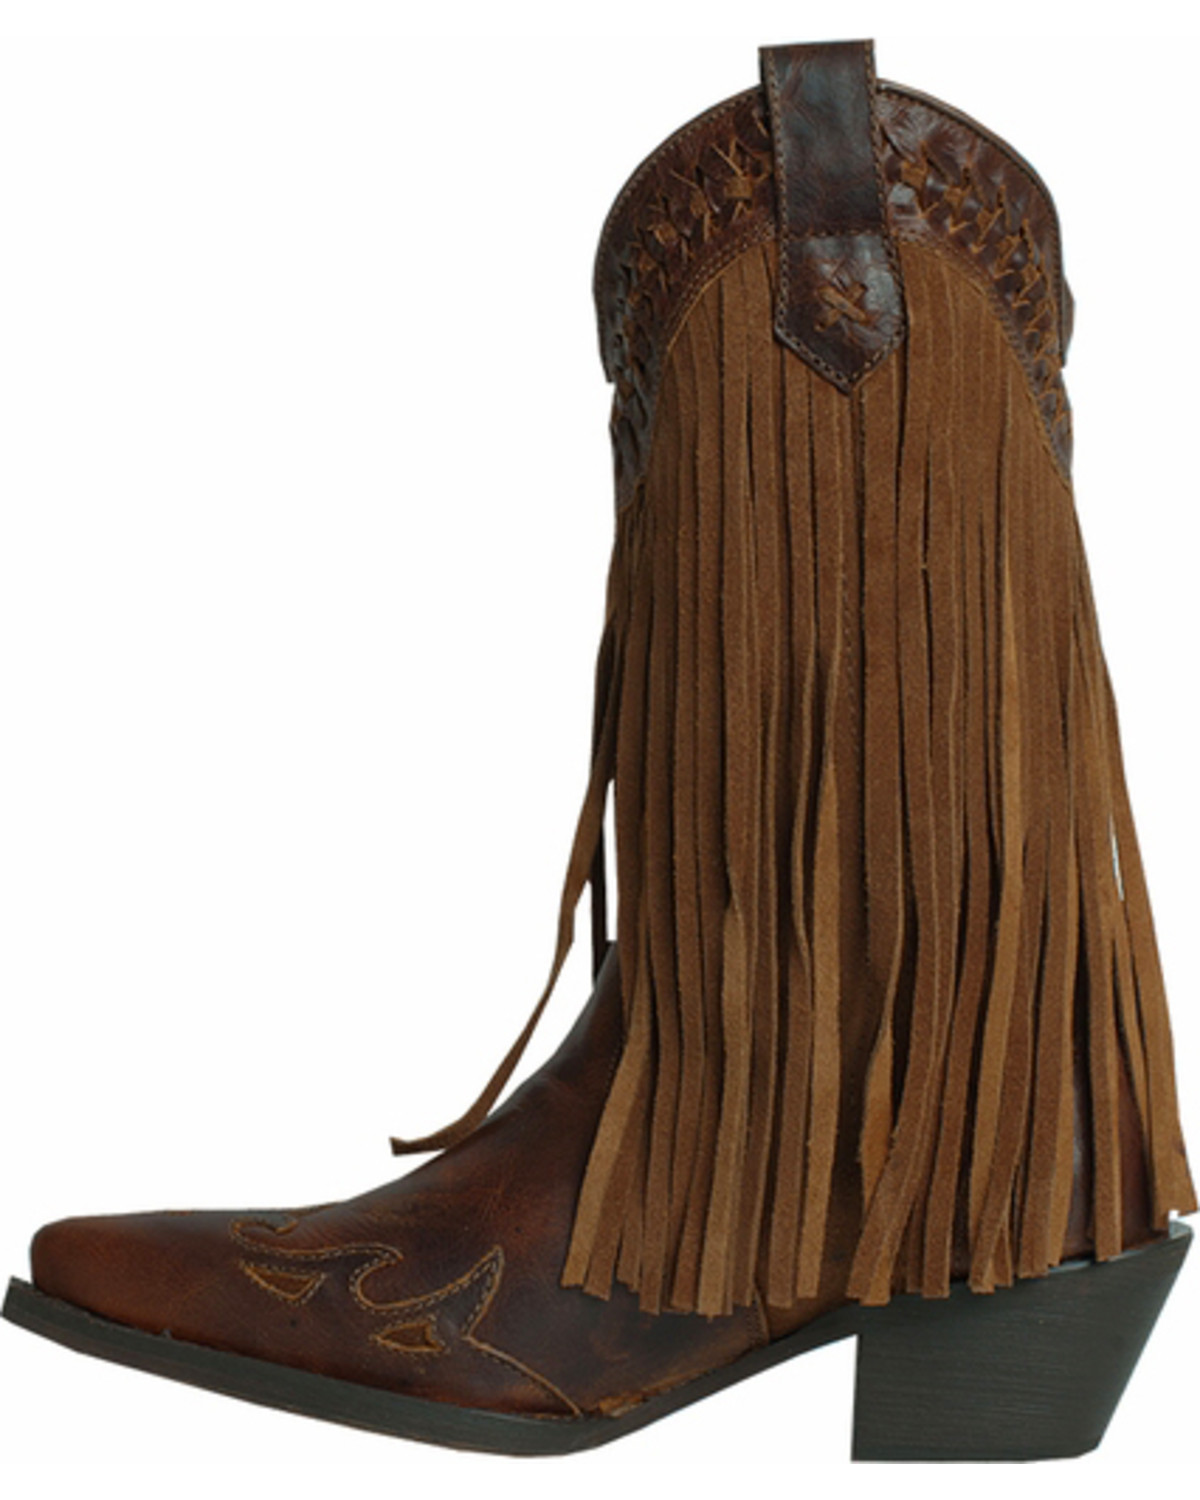 Dingo Heart Throb Fringe Cowgirl Boots - Snip Toe - Country Outfitter